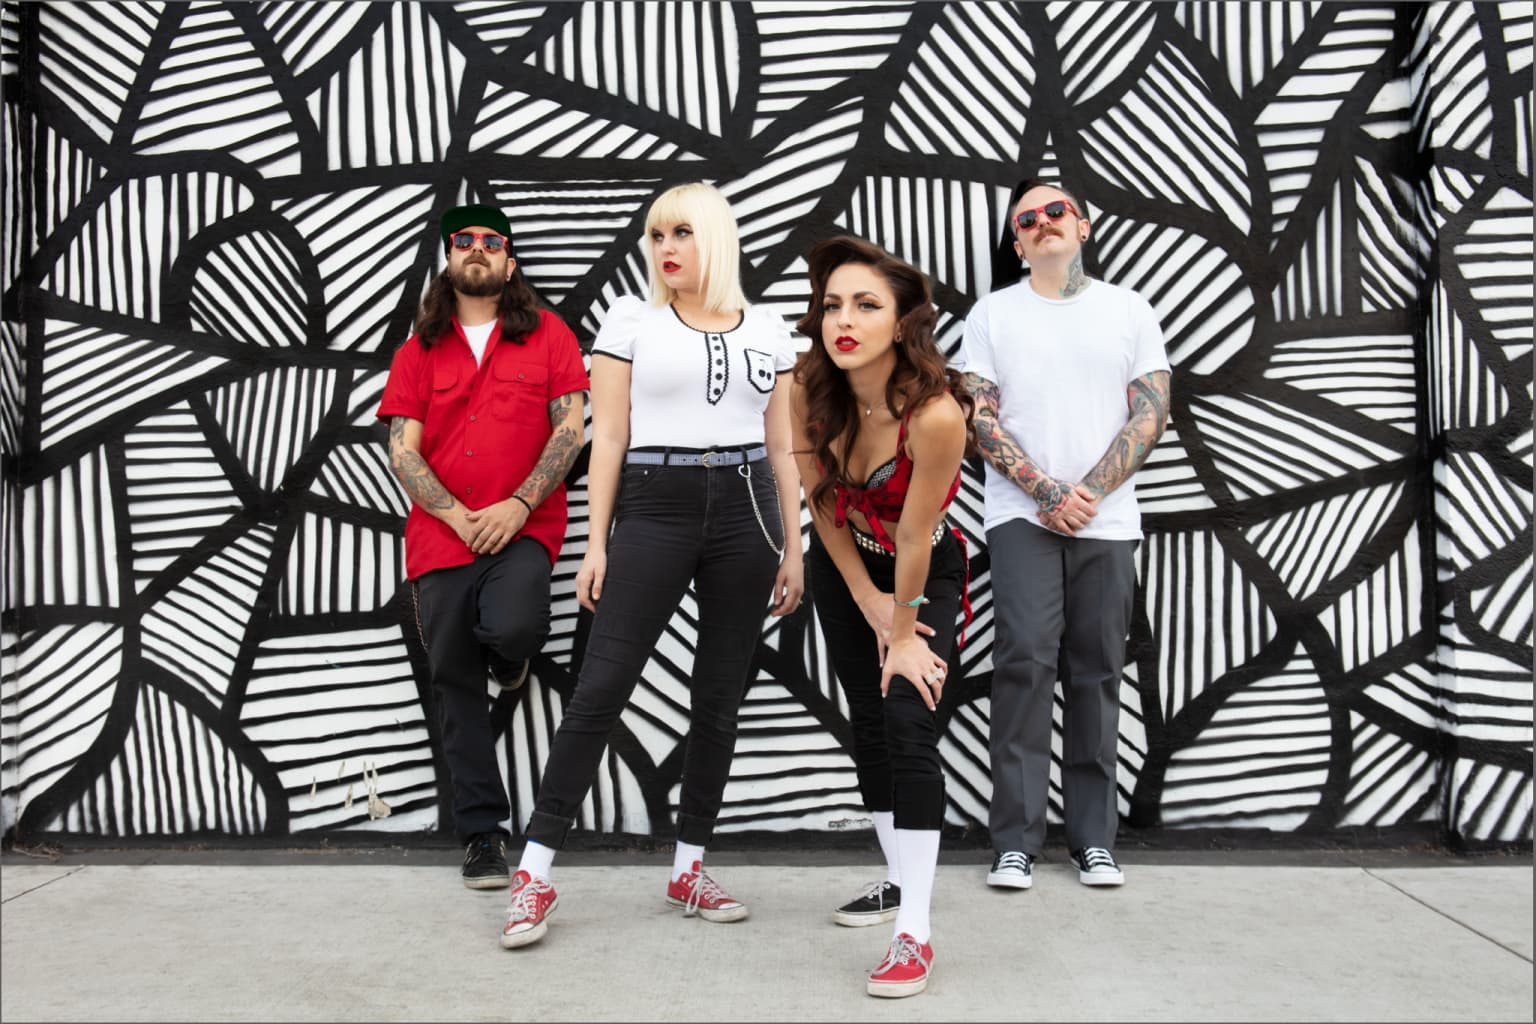 The Bombpops, Fat Wreck Chords